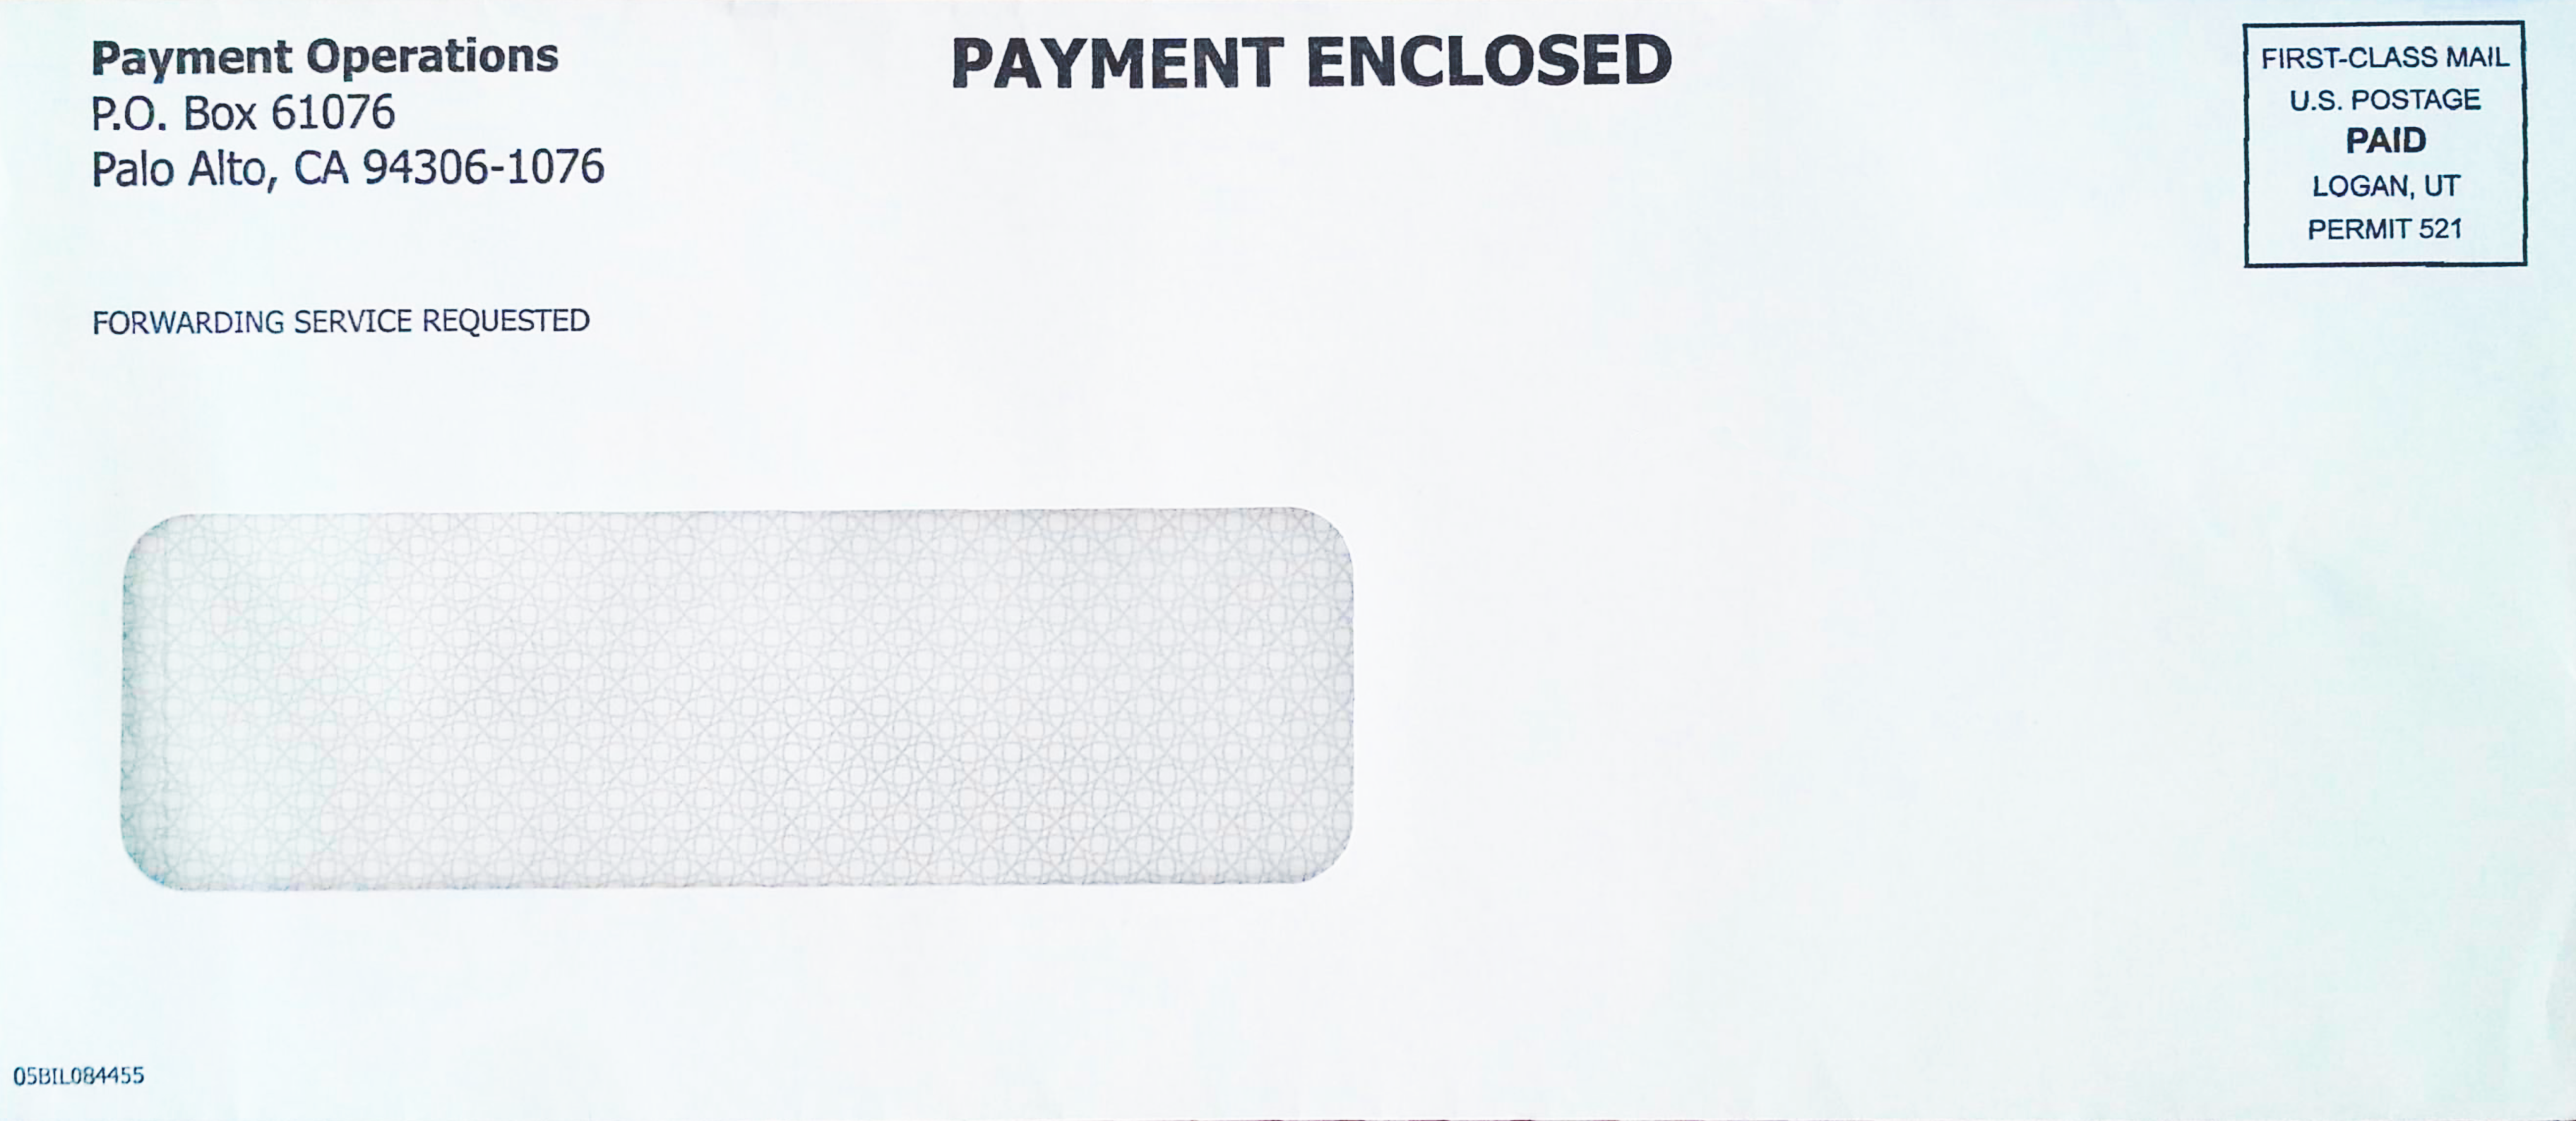 Payables - Check envelope